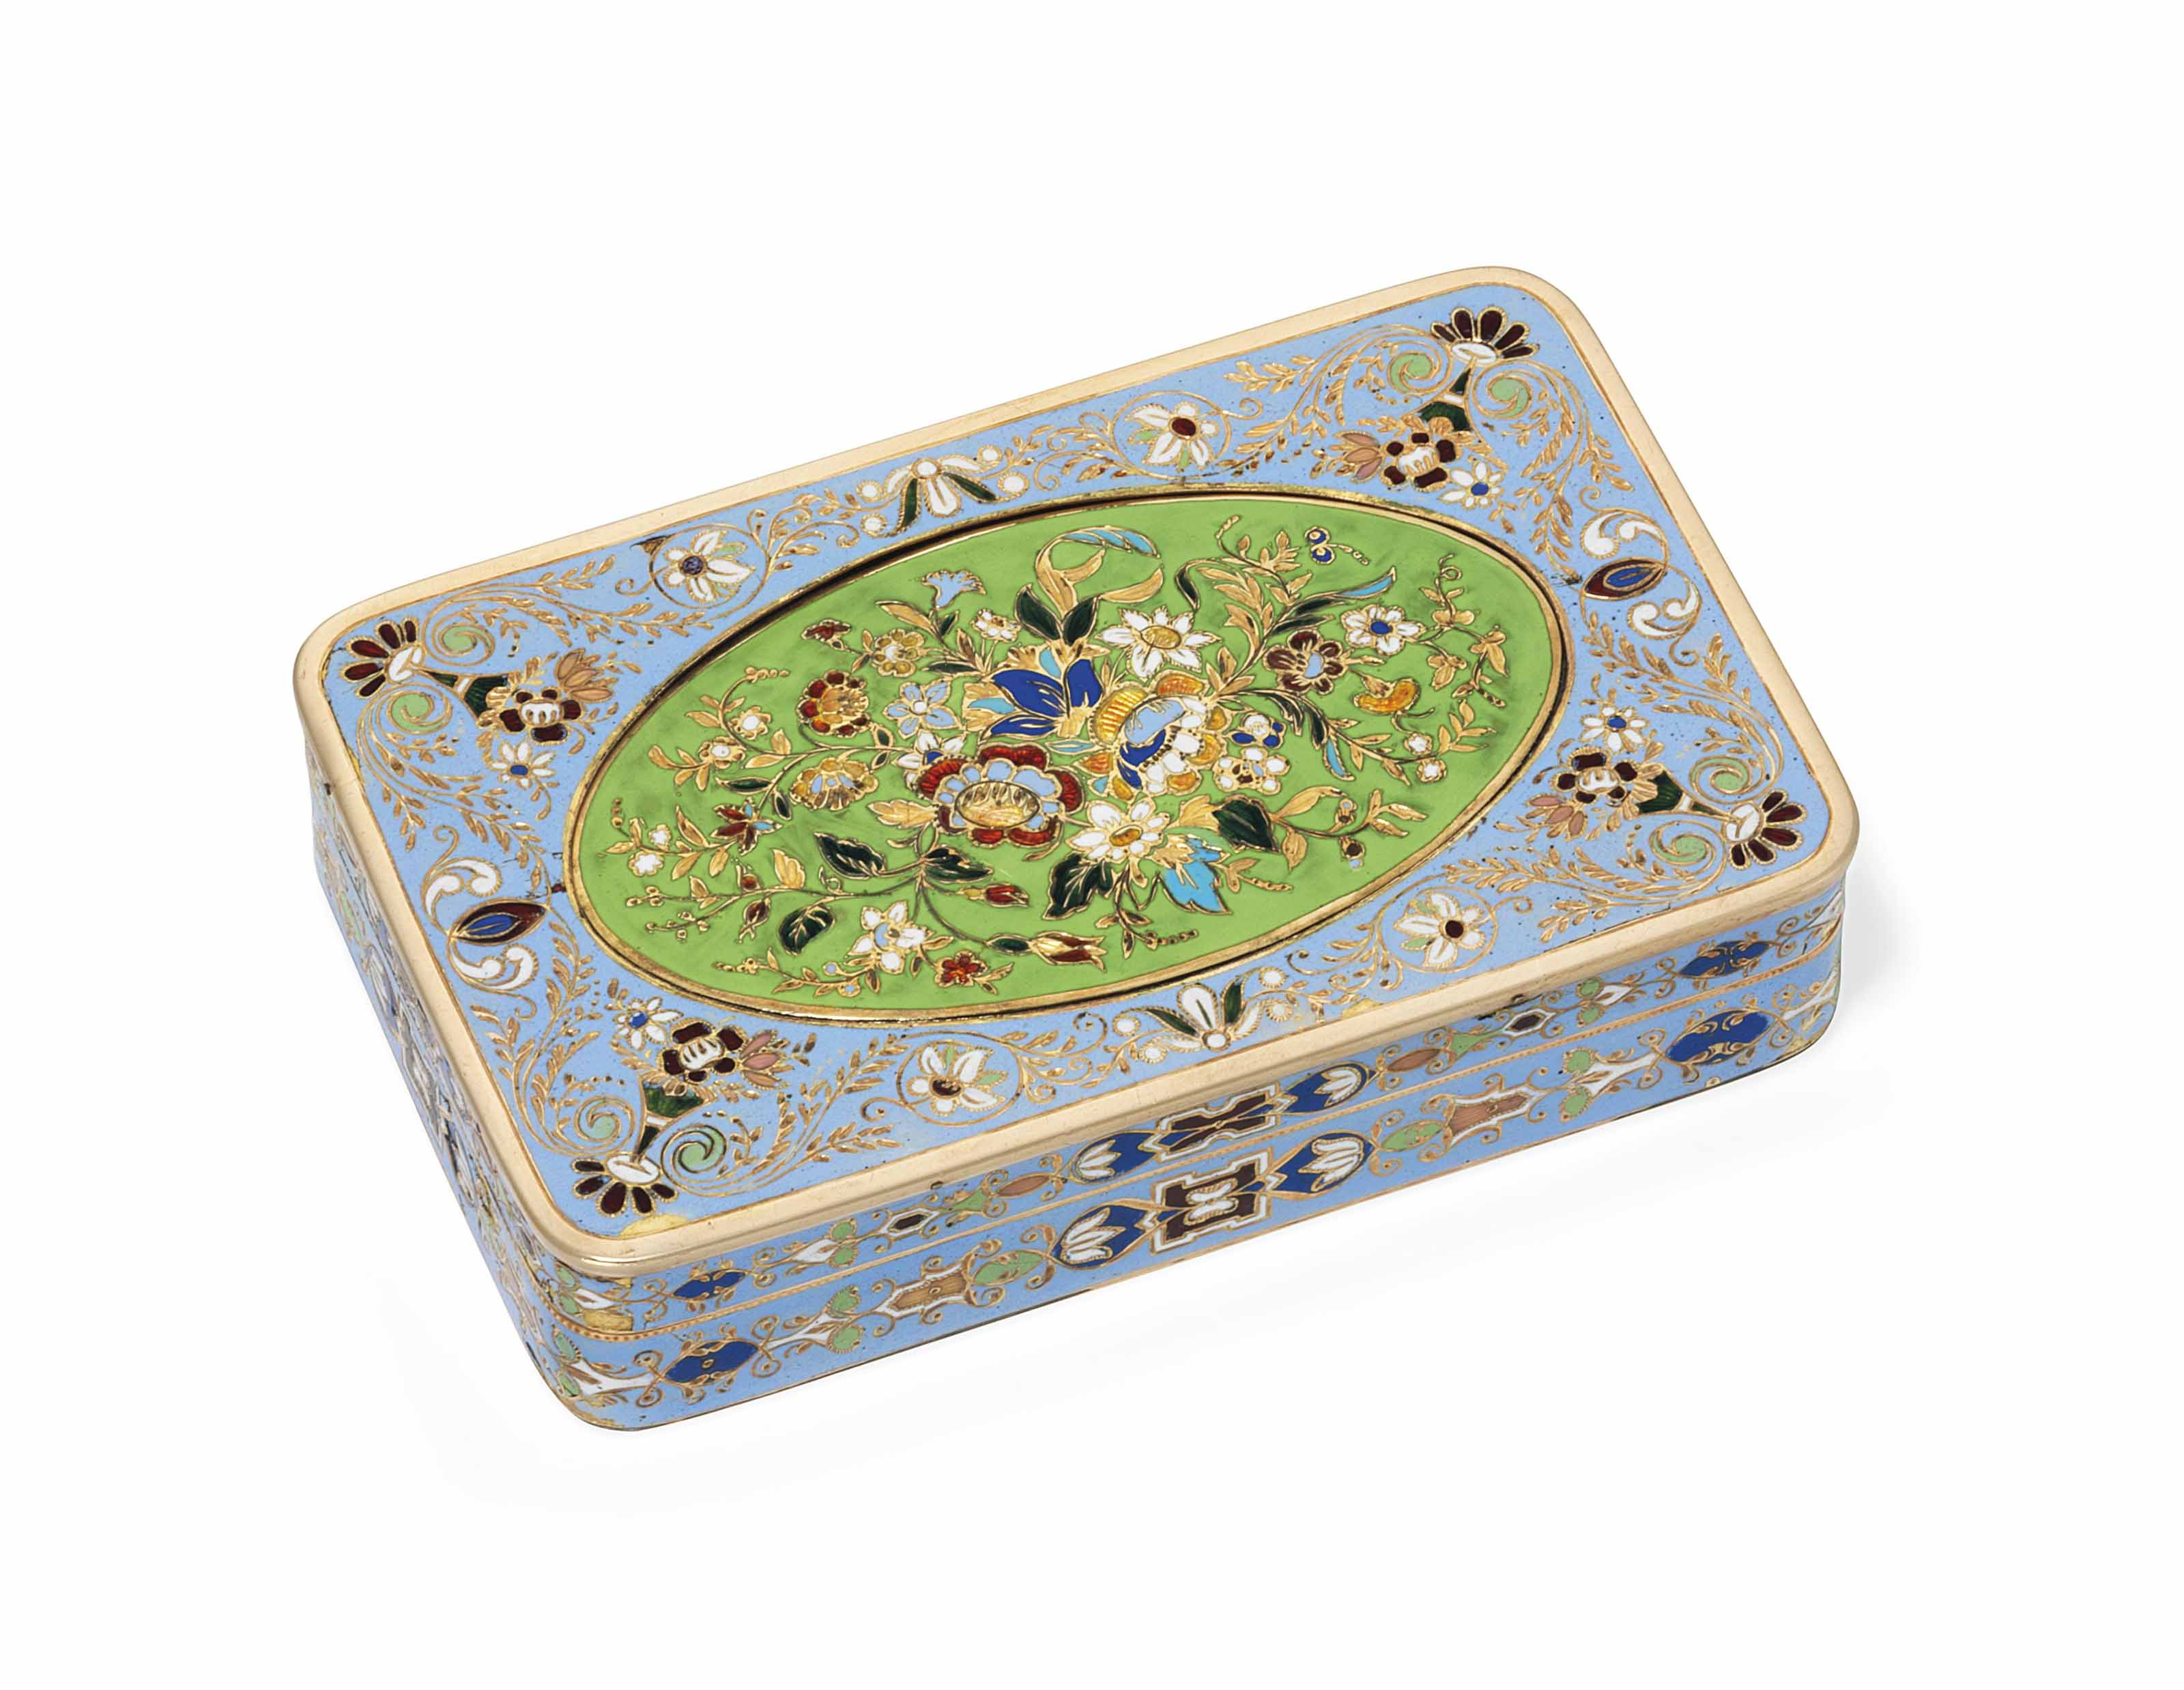 A SWISS ENAMELLED GOLD BOX FOR